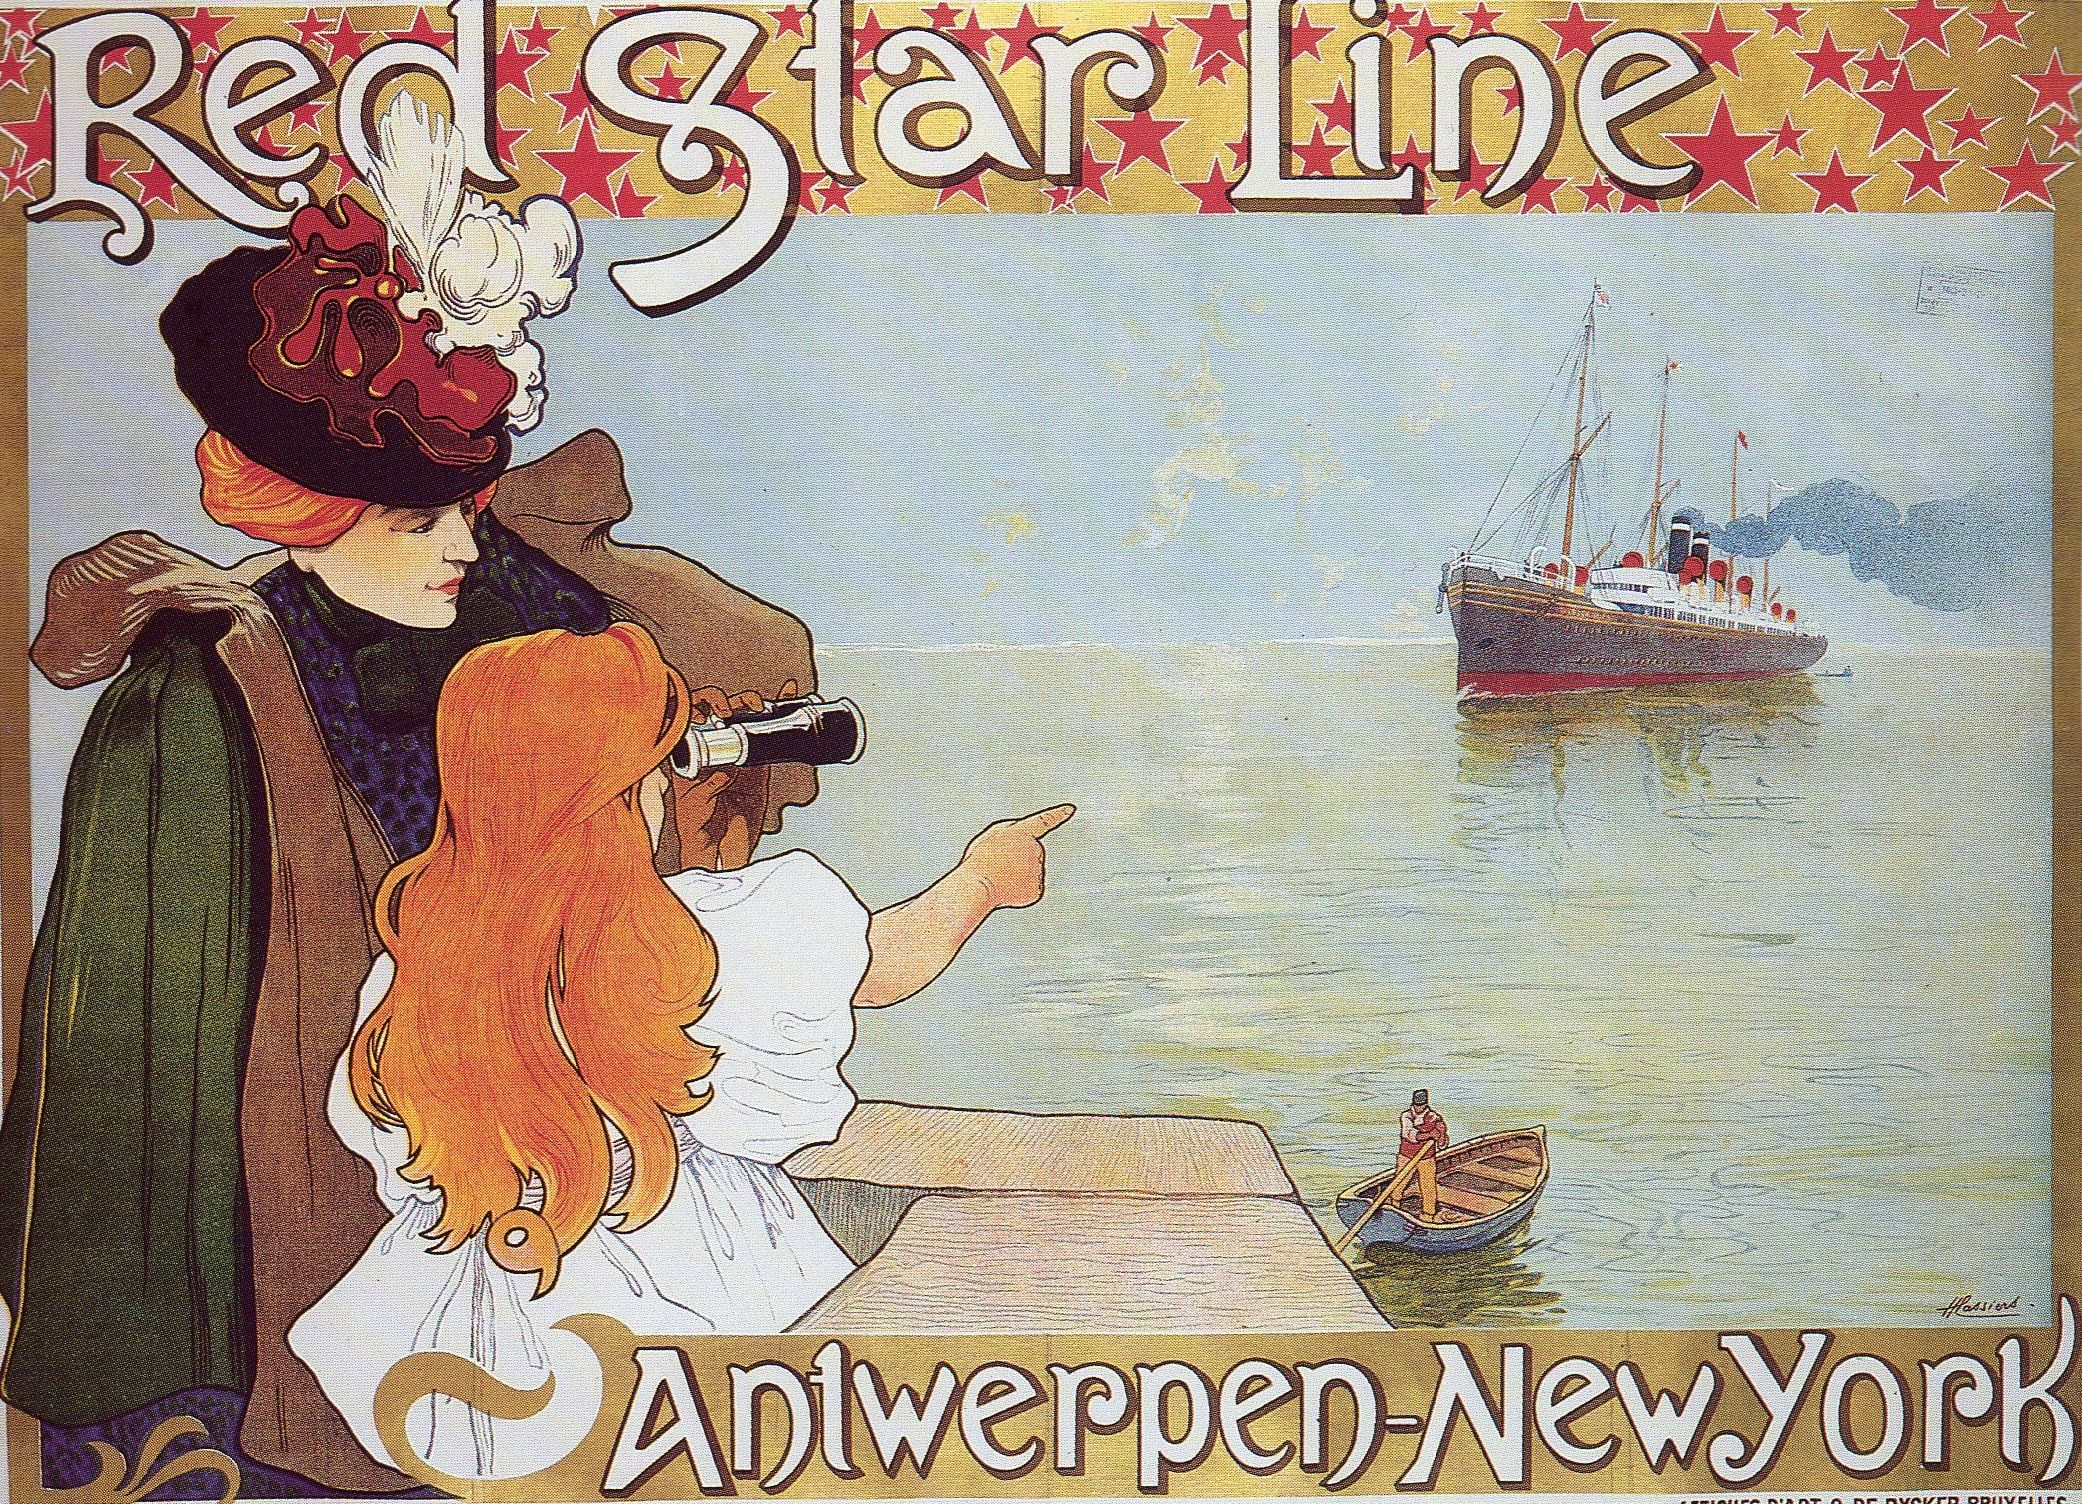 Redstarlineposter